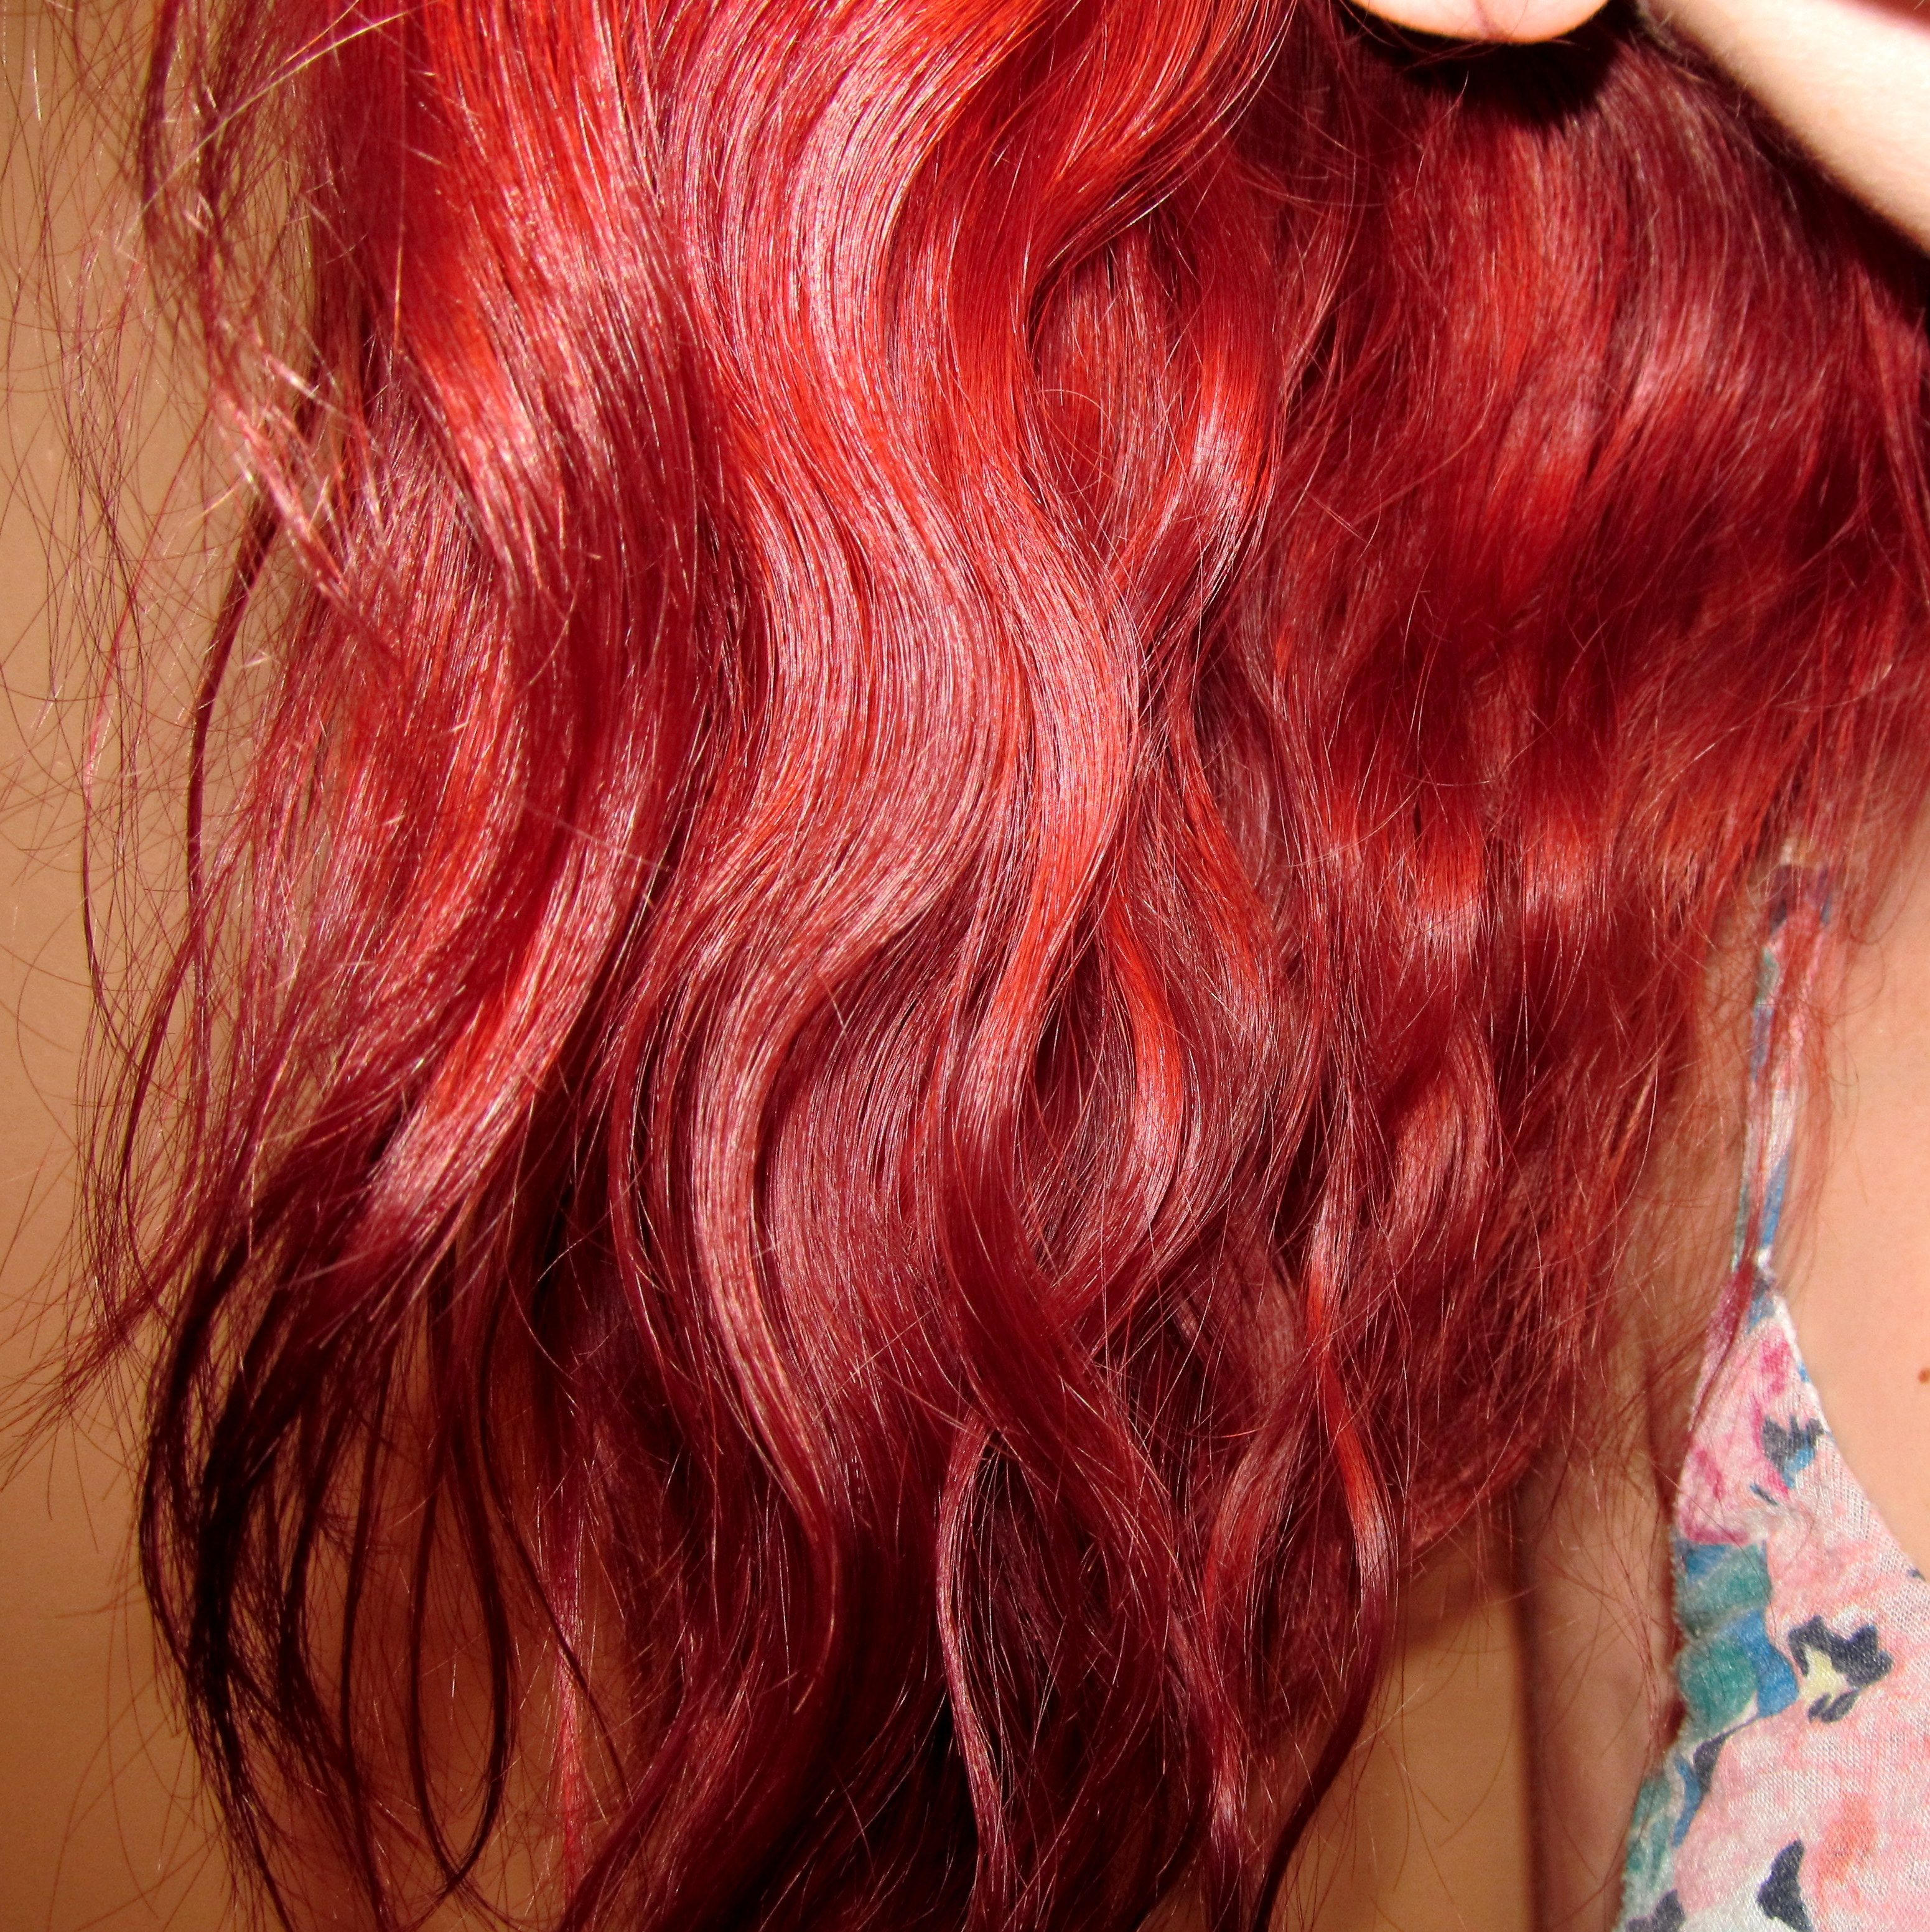 How To Make Red Hair Last Longer With Images Red Hair Upkeep